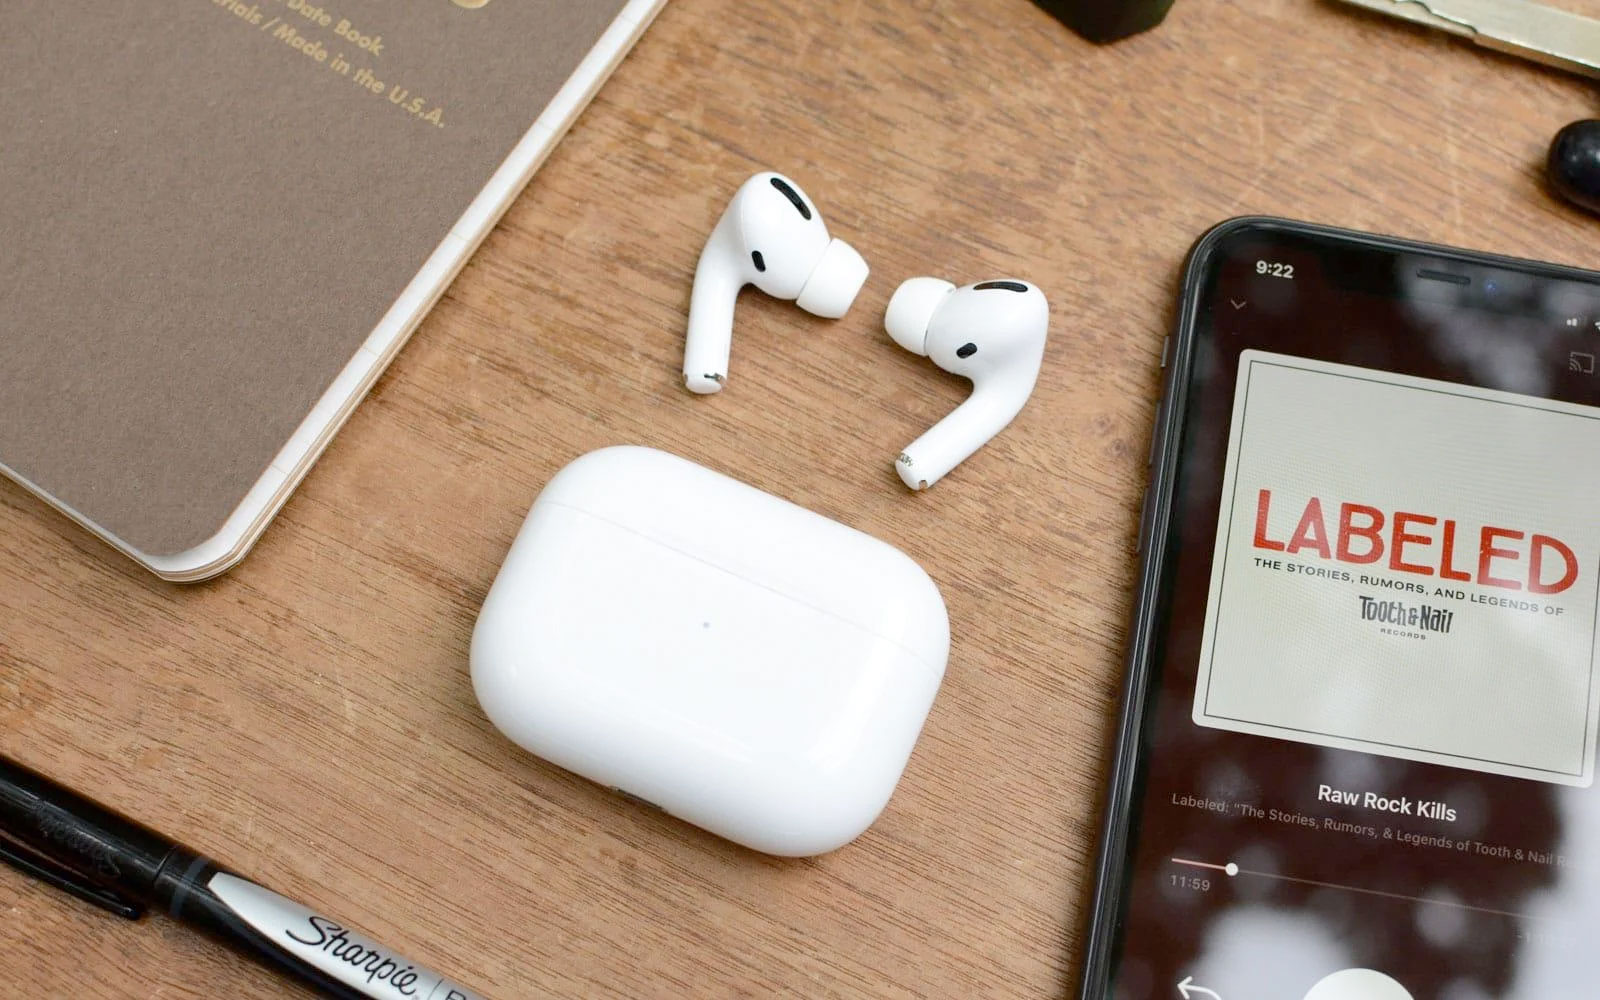 Apple's new features for AirPods include help for 'mild' hearing loss | Engadget